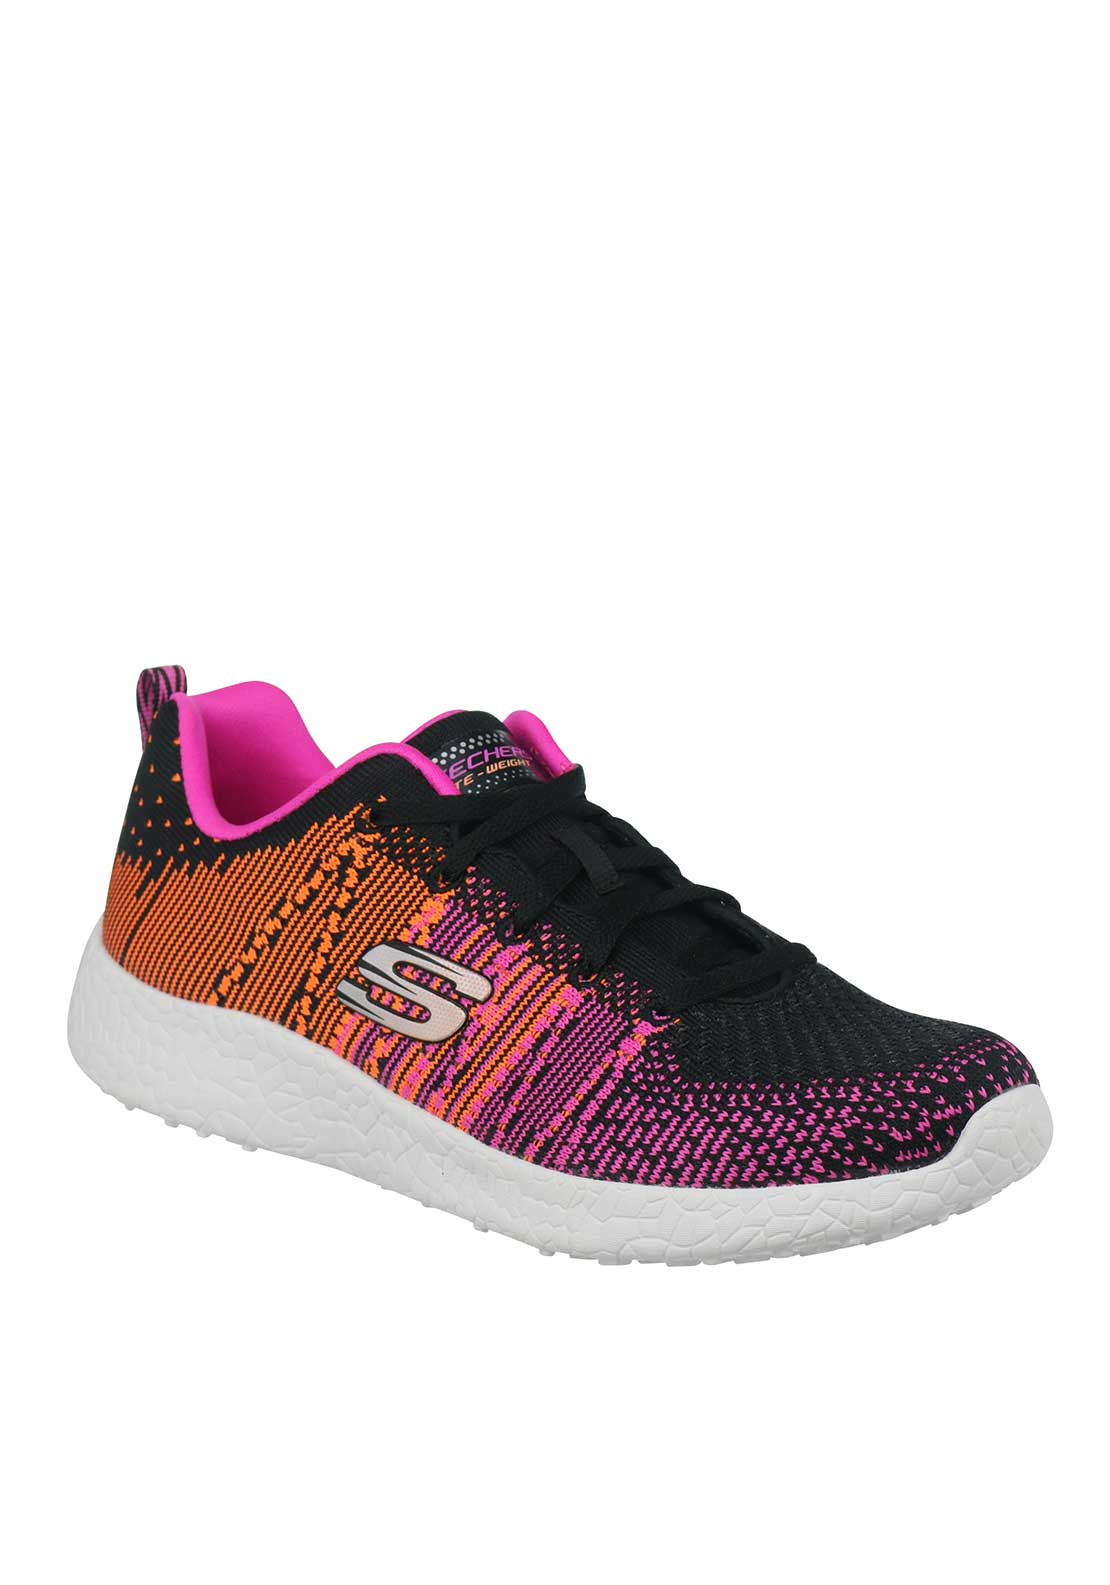 Skechers Womens Burst Memory Trainers, Black and Pink